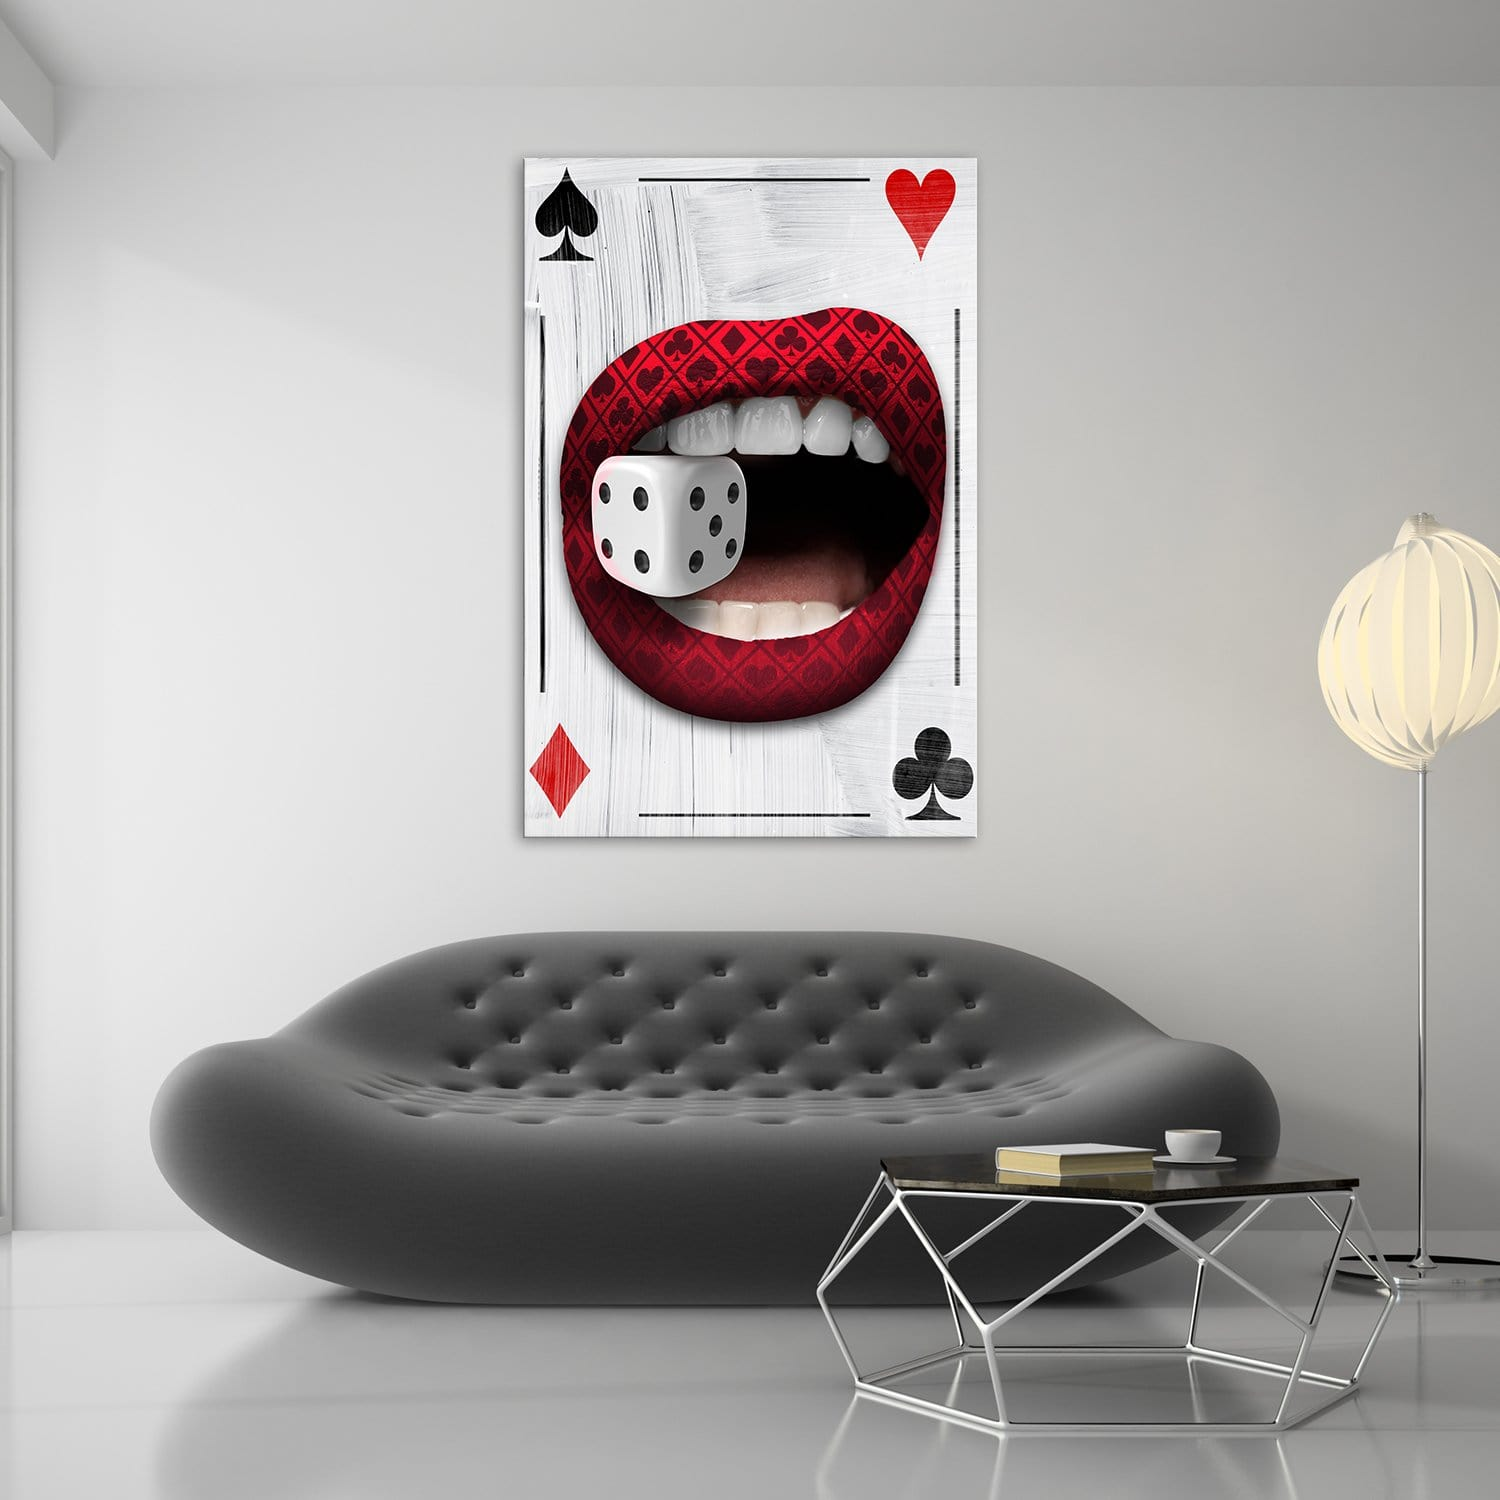 Poker Lips - Framed Canvas Painting Wall Art Office Decor, large modern pop artwork for home or office, Entrepreneur Inspirational and motivational Quotes on Canvas great for man cave or home. Perfect for Artwork Addicts. Made in USA, FREE Shipping.